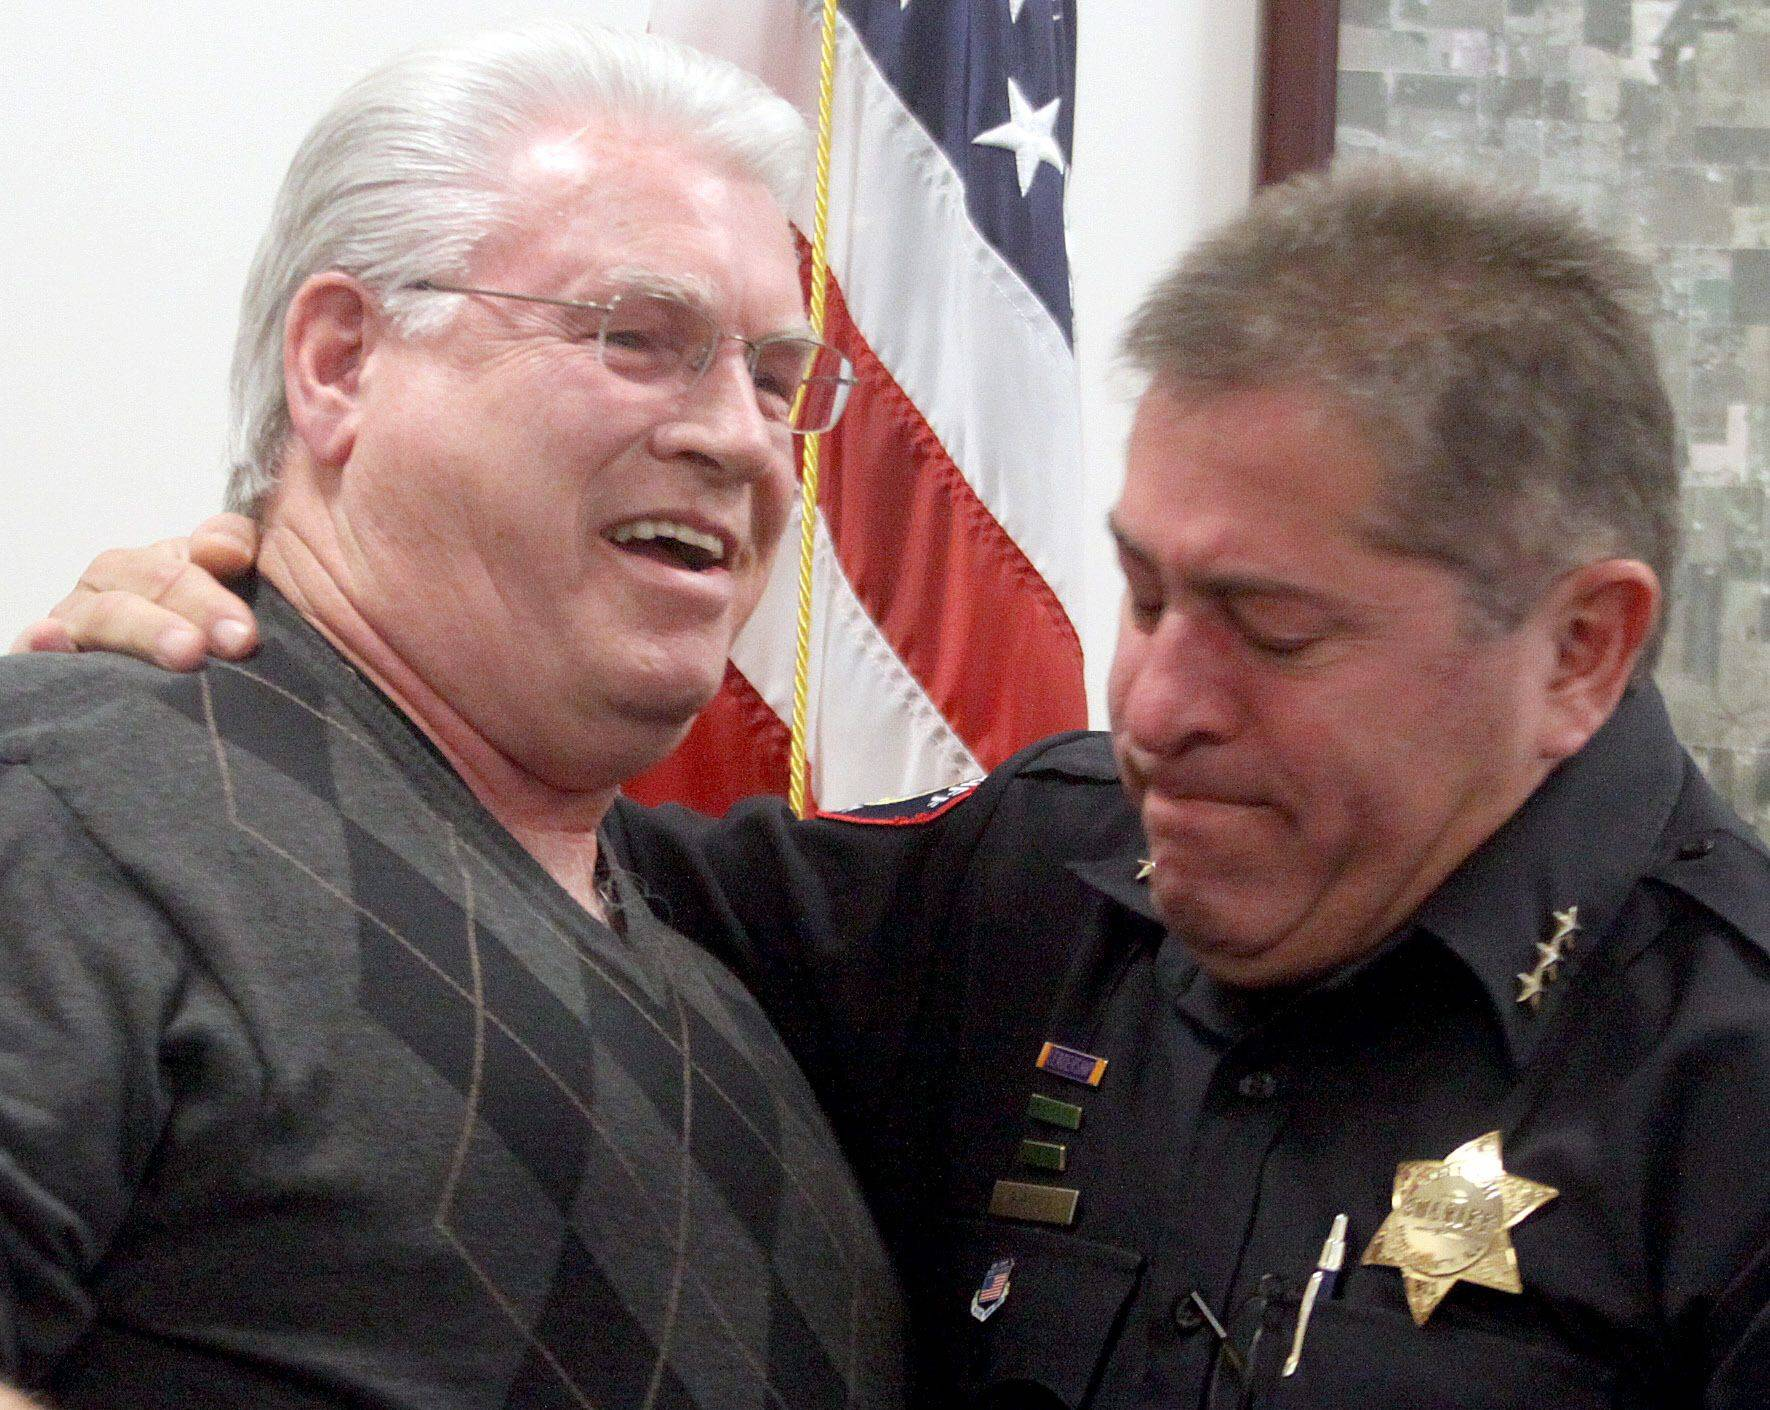 Richard Ebey and Kane County Sheriff Pat Perez share a moment Thursday at the sheriff's office after Ebey offered a special edition of the Roscoe Ebey Award to Perez in honor of the kindness, care and guidance the sheriff's department has displayed in the years since Richard's father, Roscoe, was killed during a 2007 Aurora Township robbery.